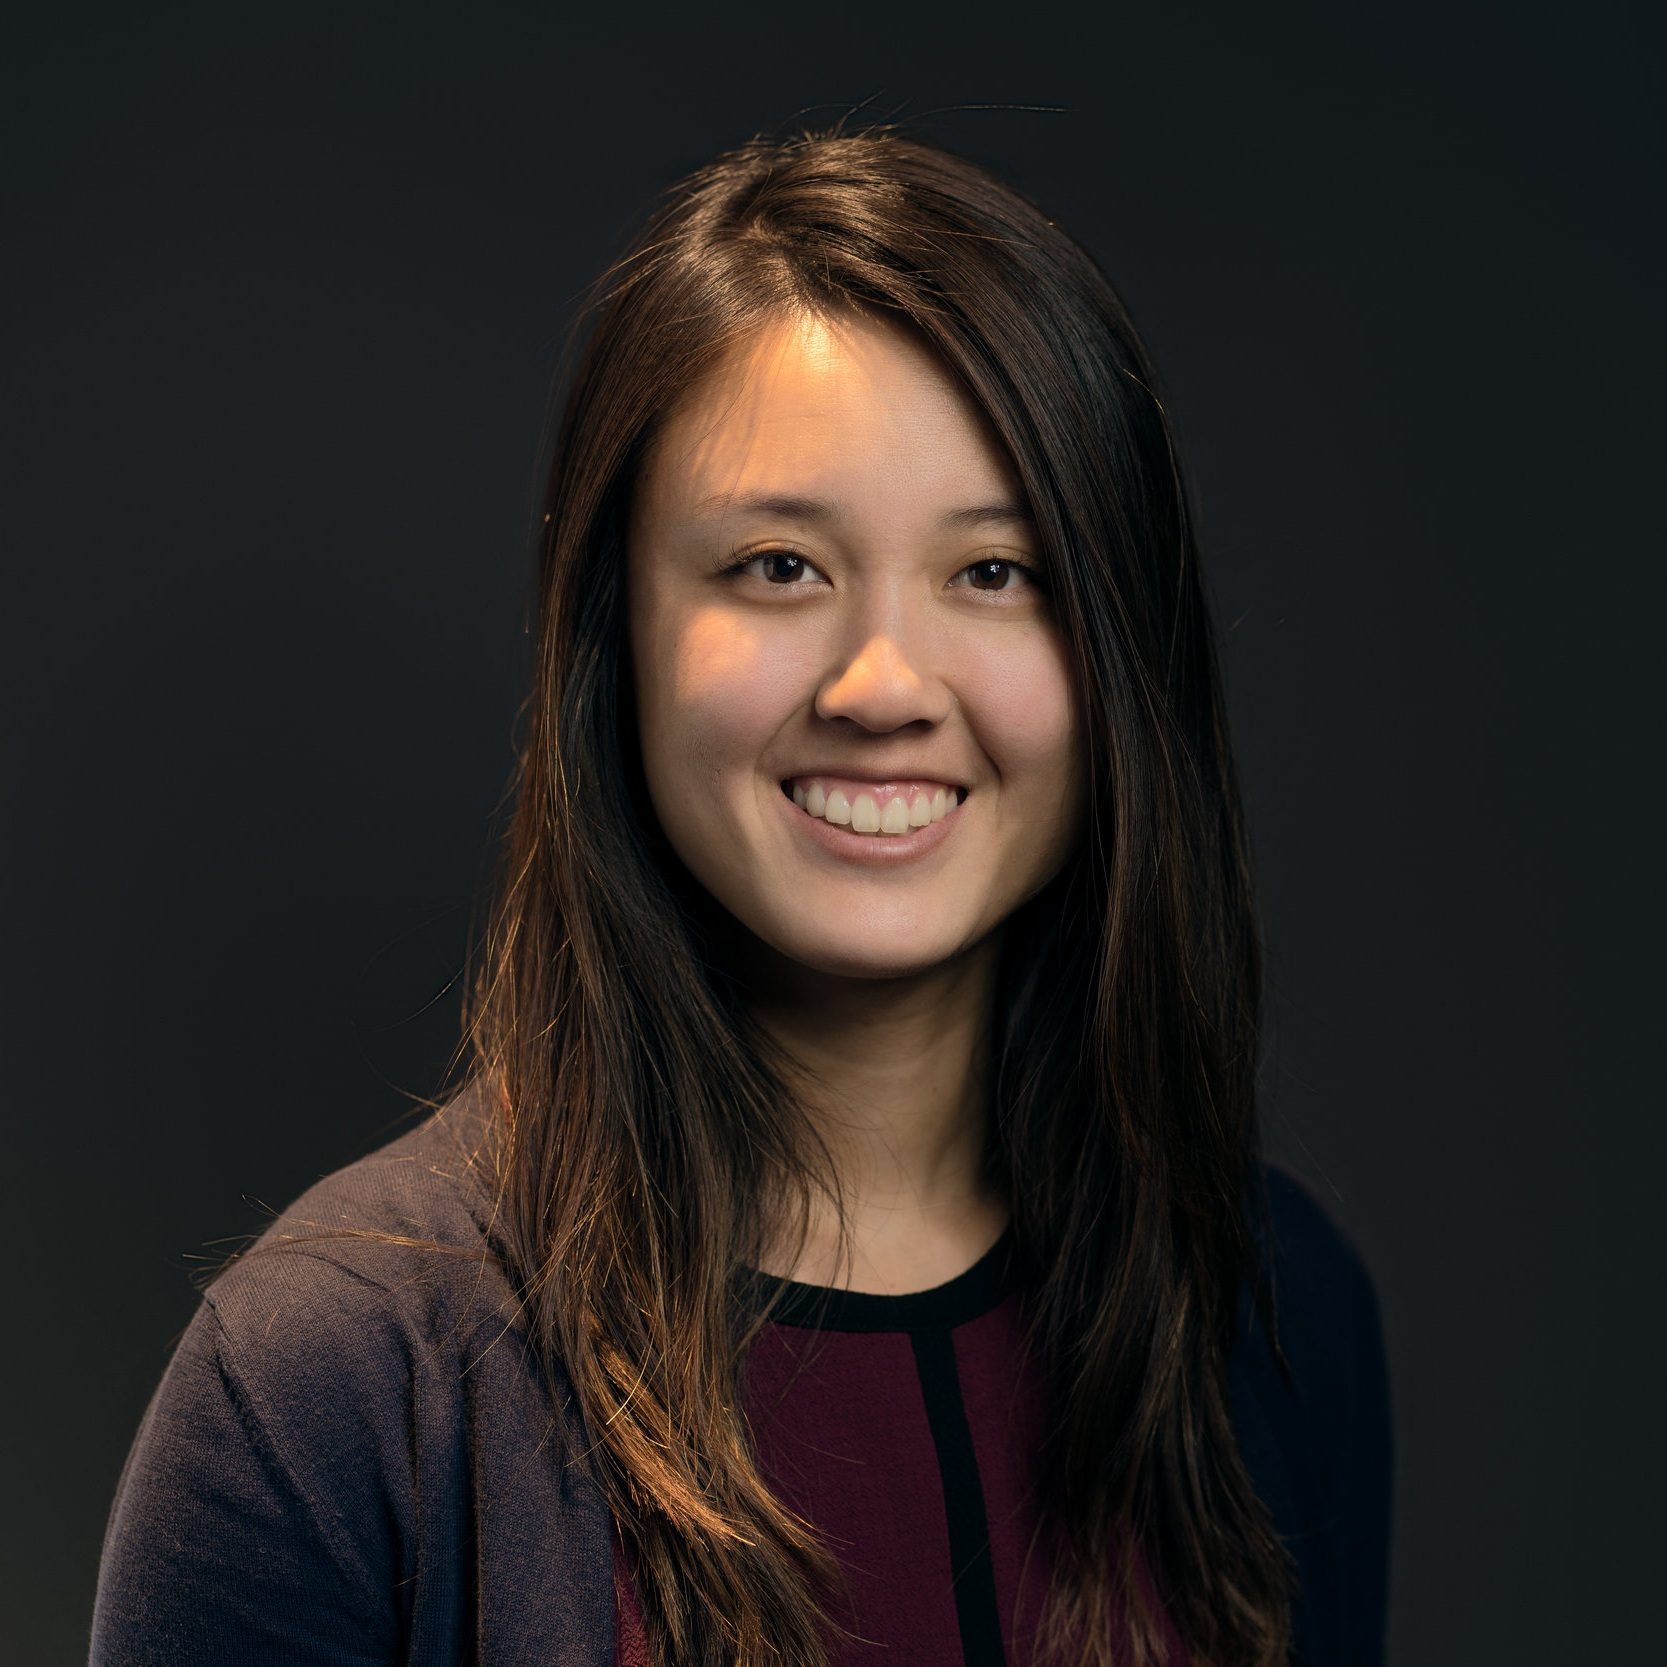 Christina Ling - Manager of Communications & Multimedia